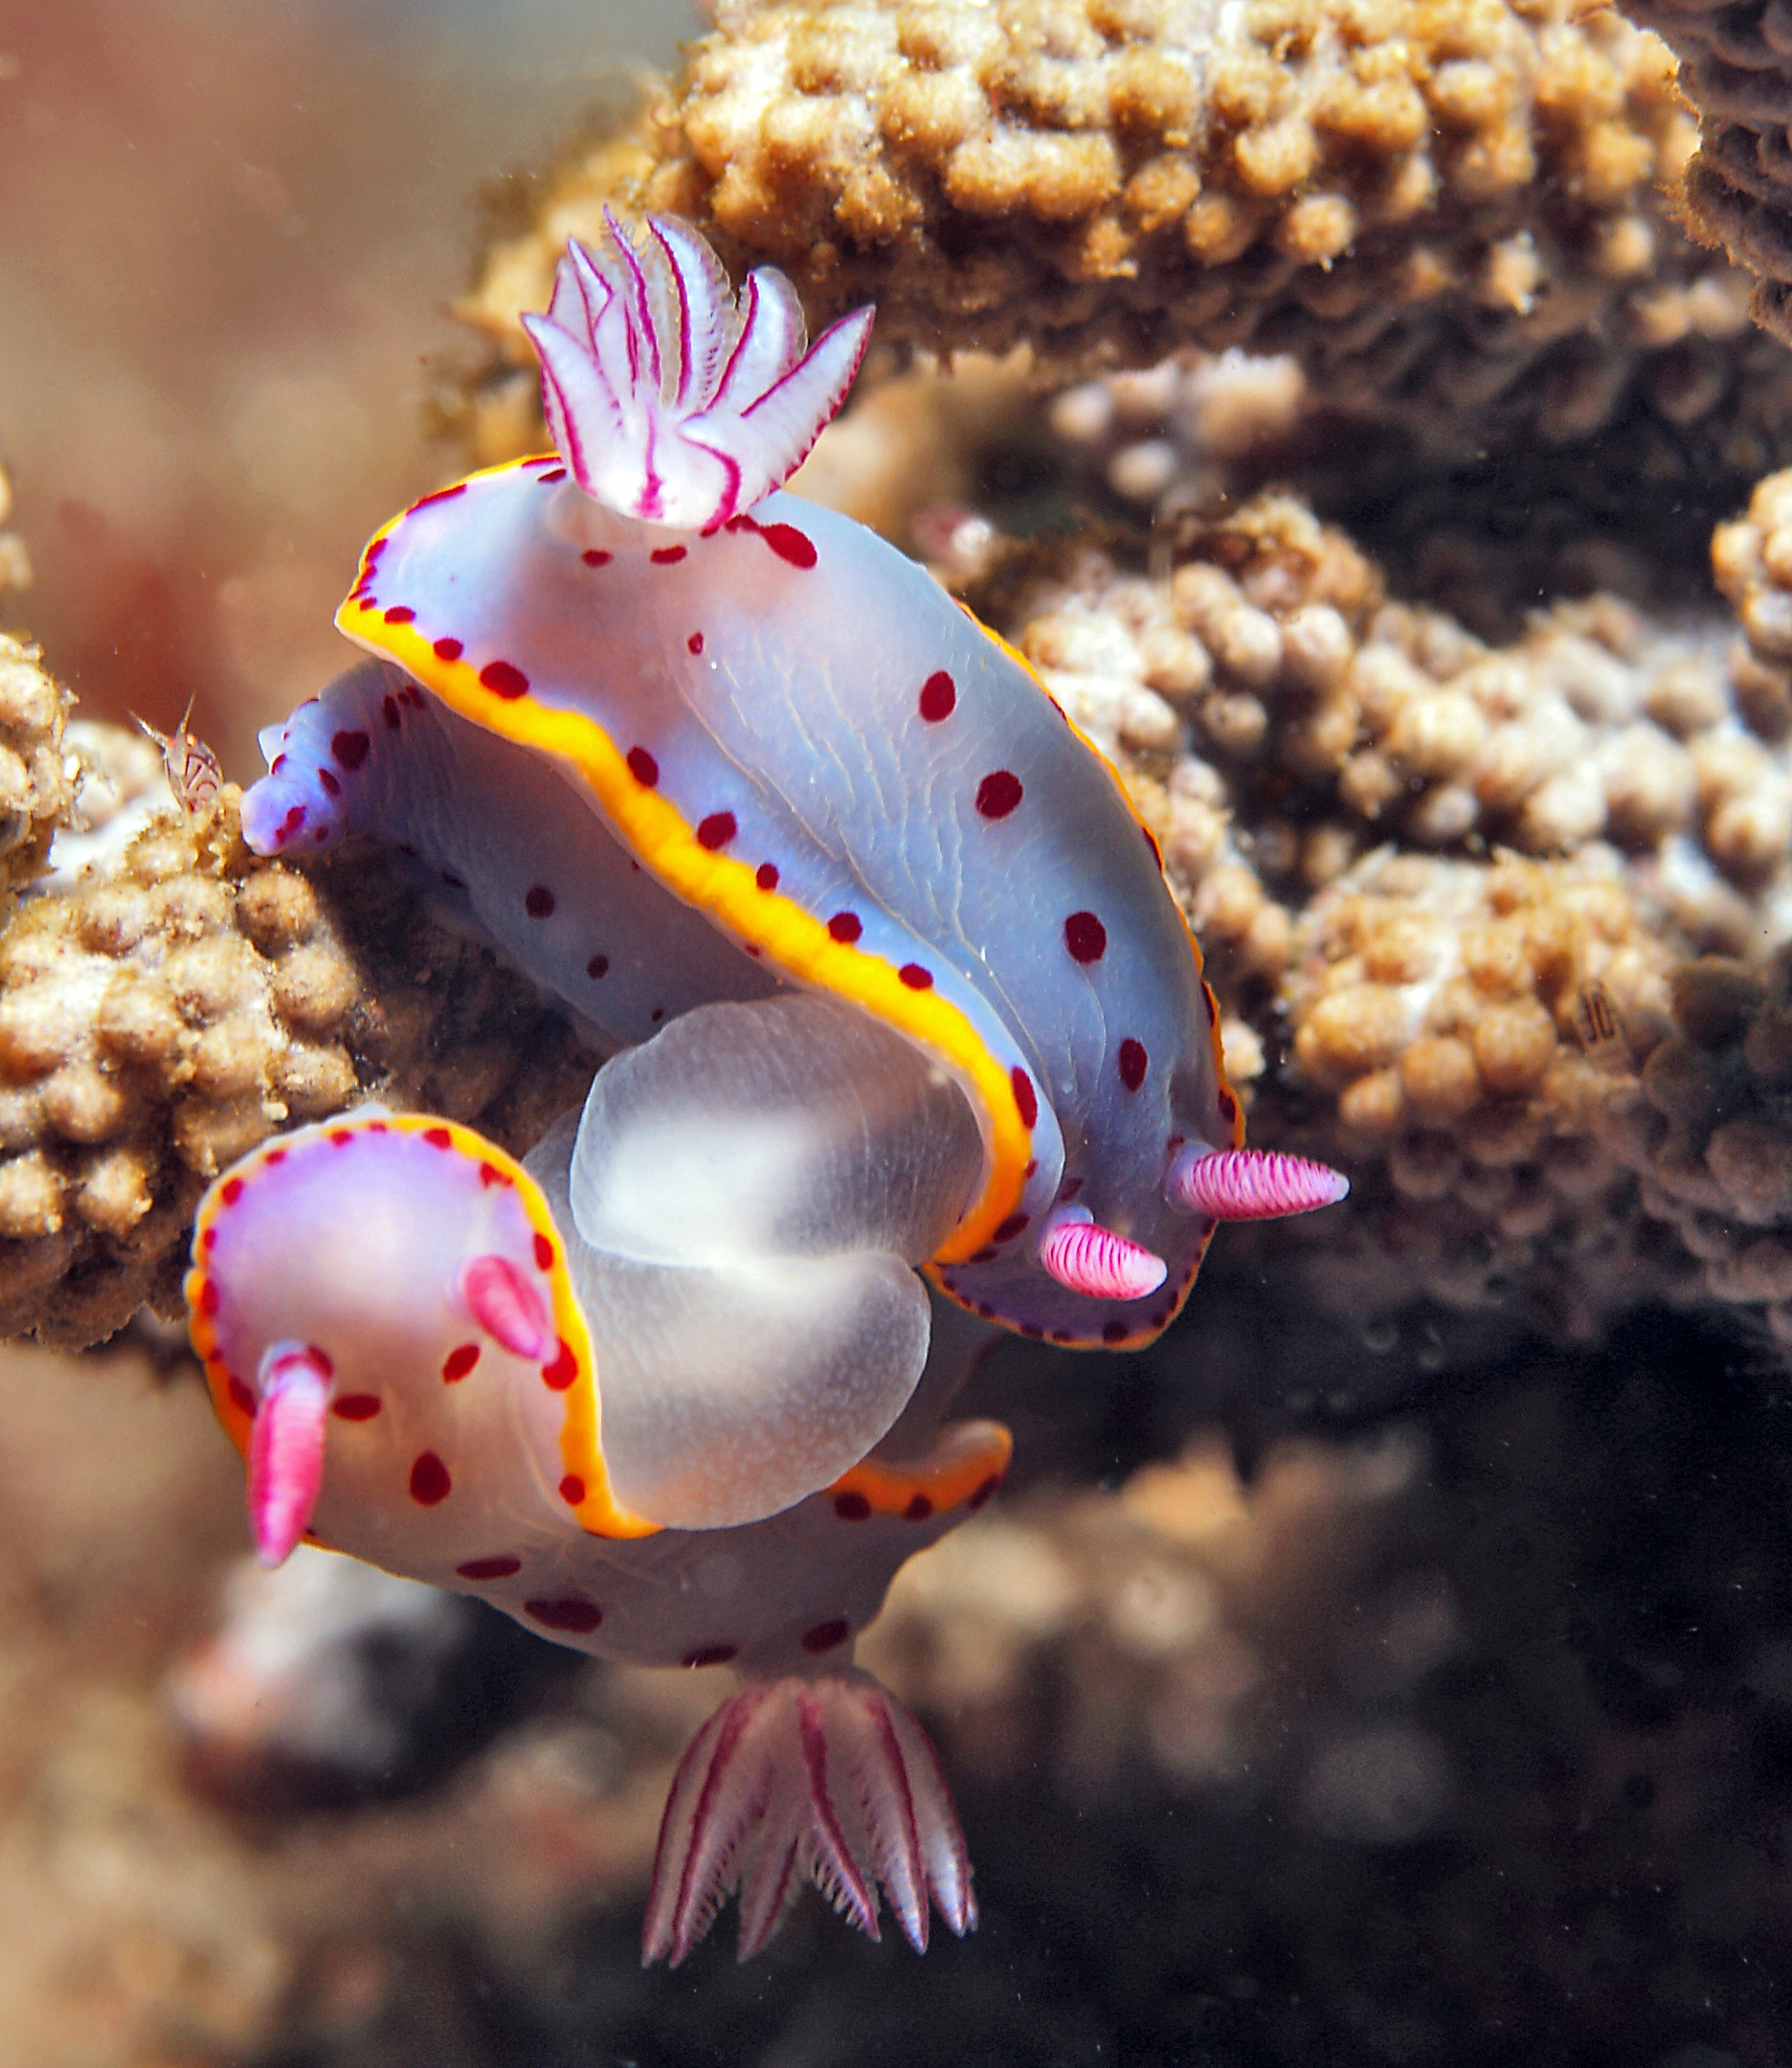 MAting nudibranchs credit: JAYNE JENKINS / coral reef image bank